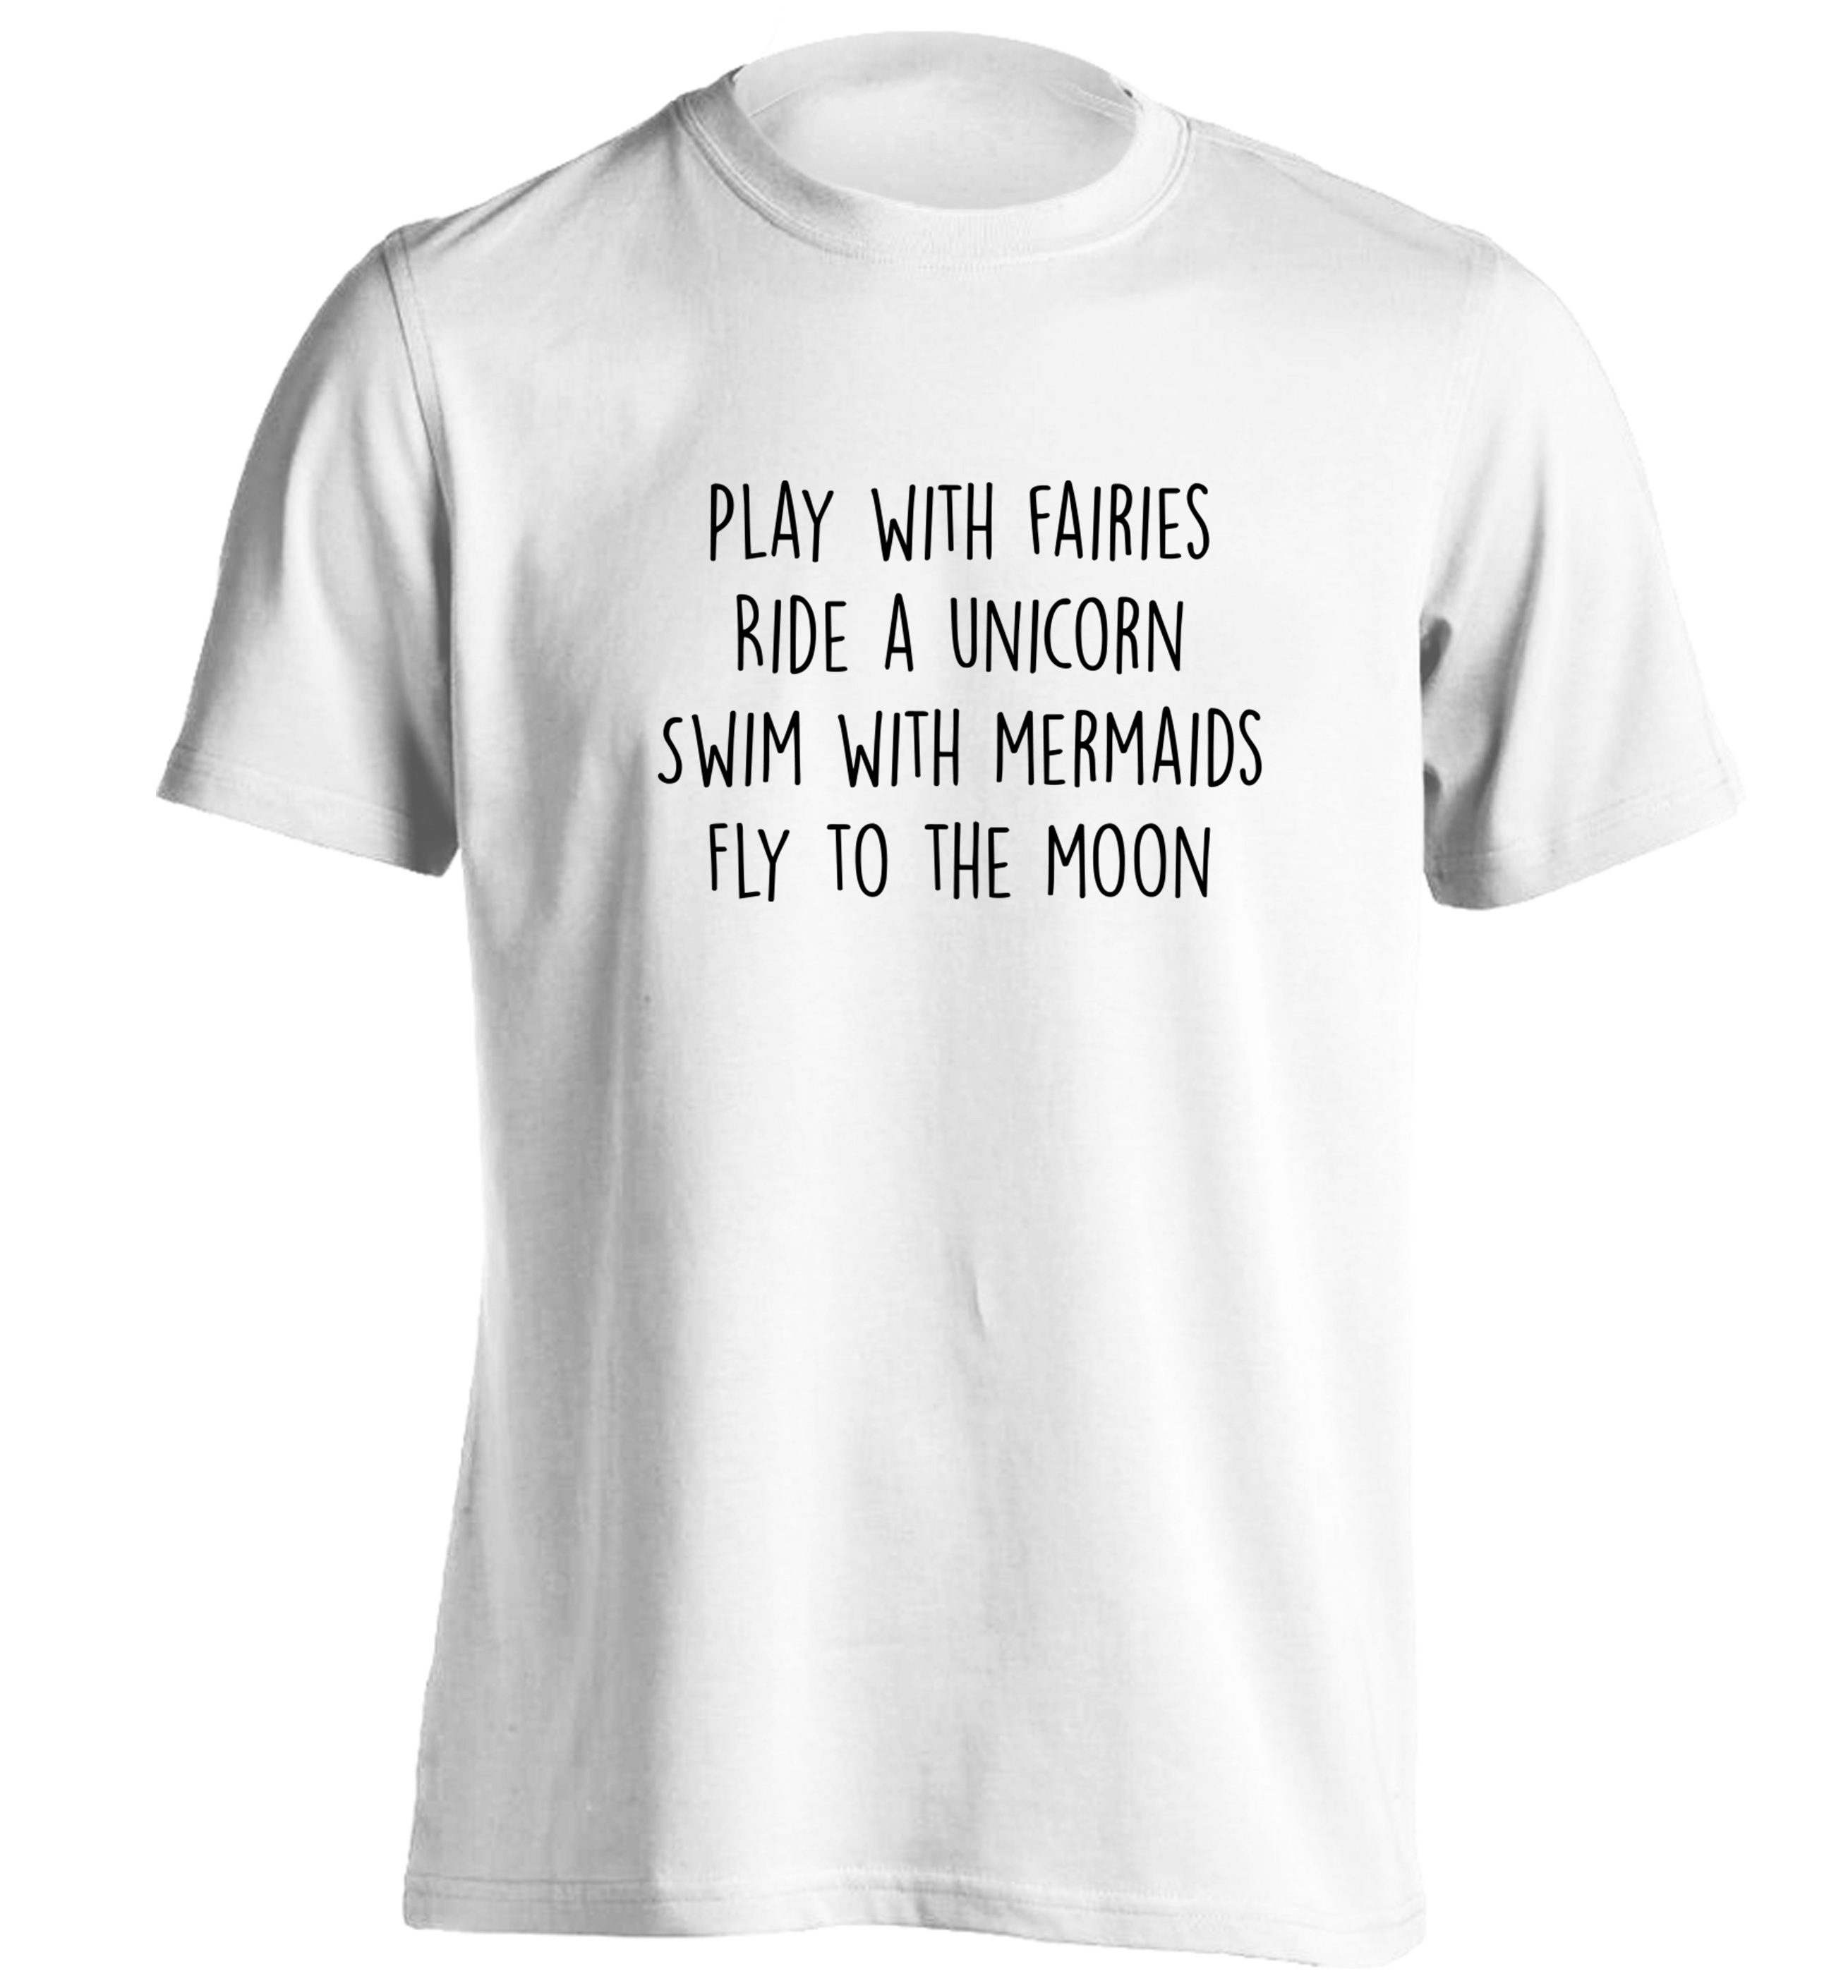 6f542c0f Play with fairies ride a unicorn swim with mermaids fly to the moon Tshirt  fantasy tumblr